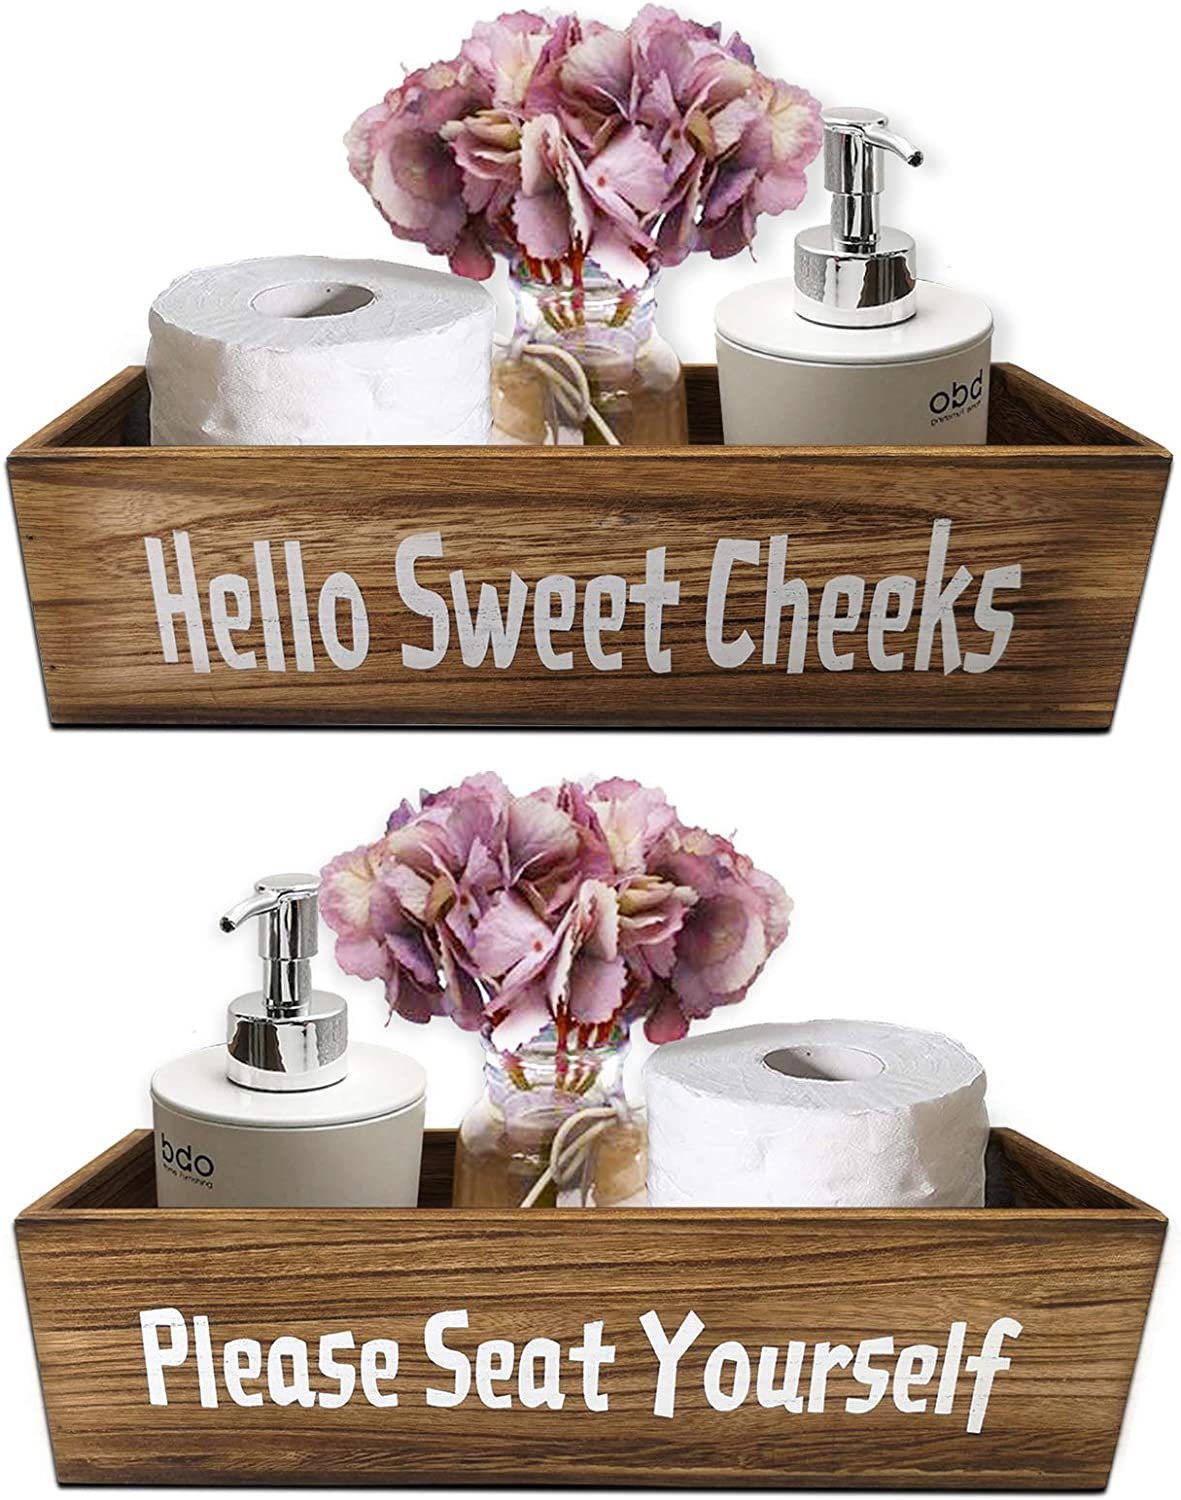 BESCRCL Funny Bathroom Box 2 Packs, Farmhouse Rustic Wooden Toilet Paper Holder, Storage Home Room Decor for Bathroom